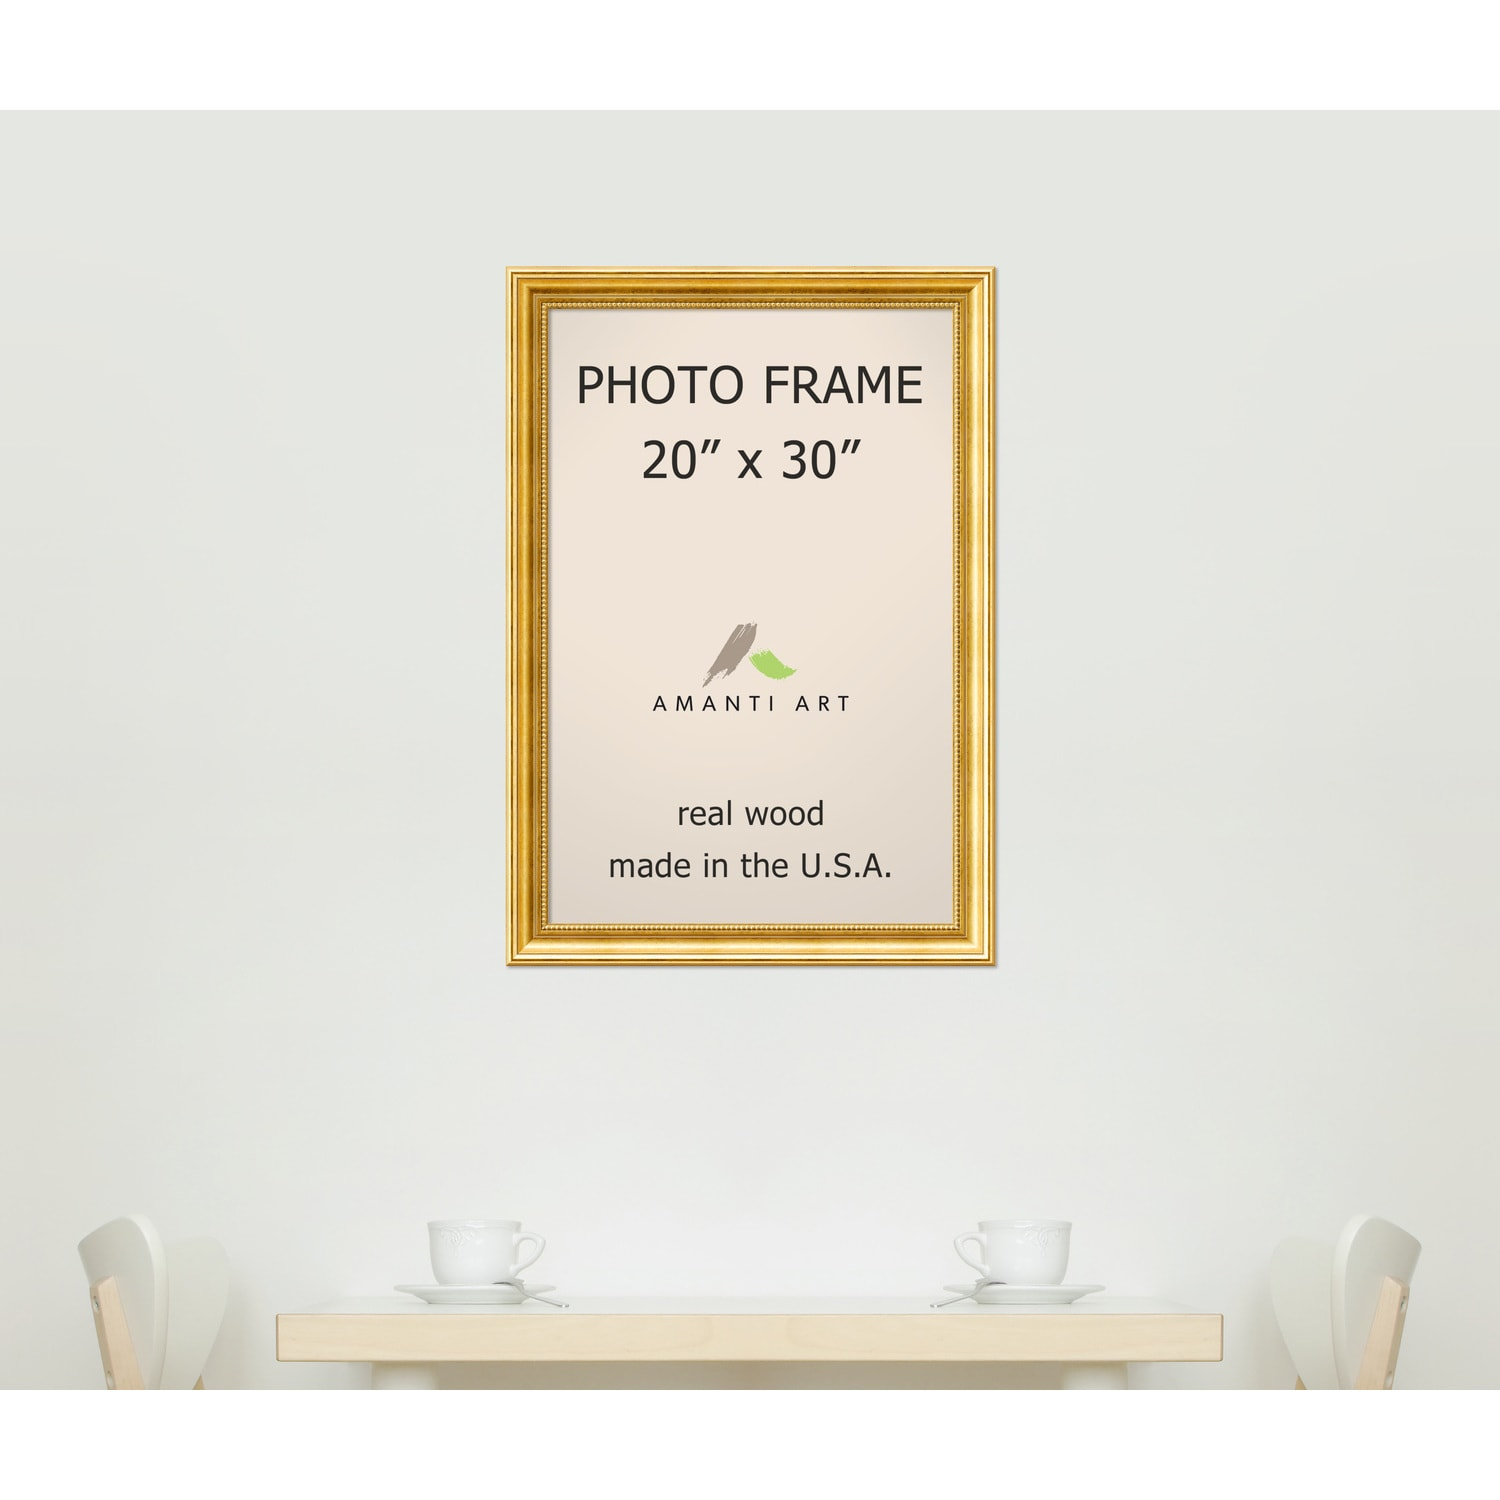 Townhouse gold photo frame 23 x 33 inch free shipping today townhouse gold photo frame 23 x 33 inch free shipping today overstock 17239628 jeuxipadfo Choice Image